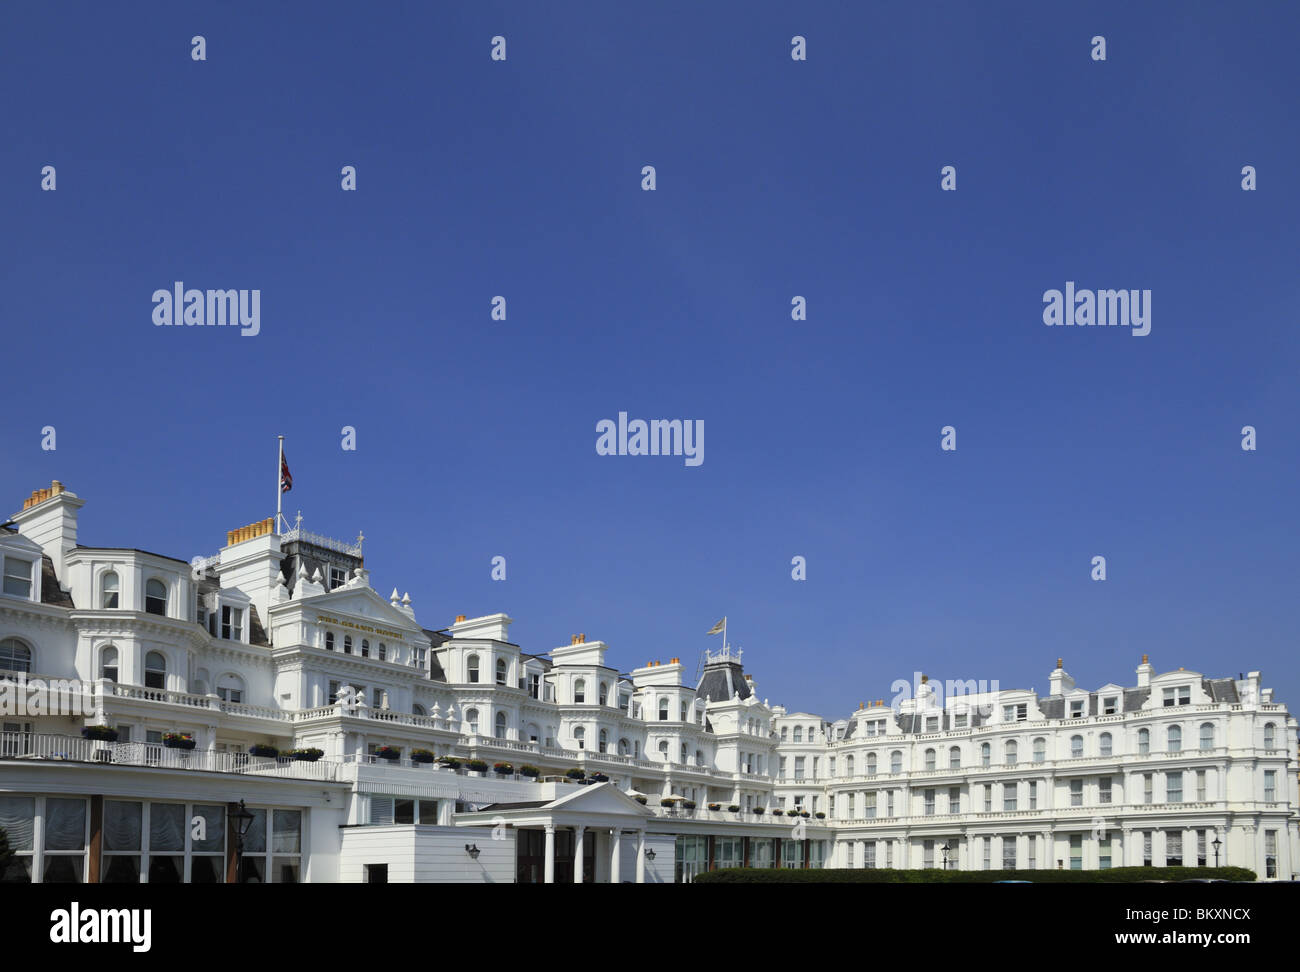 The facade of the five star Grand Hotel on Eastbourne's seafront, East Sussex. - Stock Image